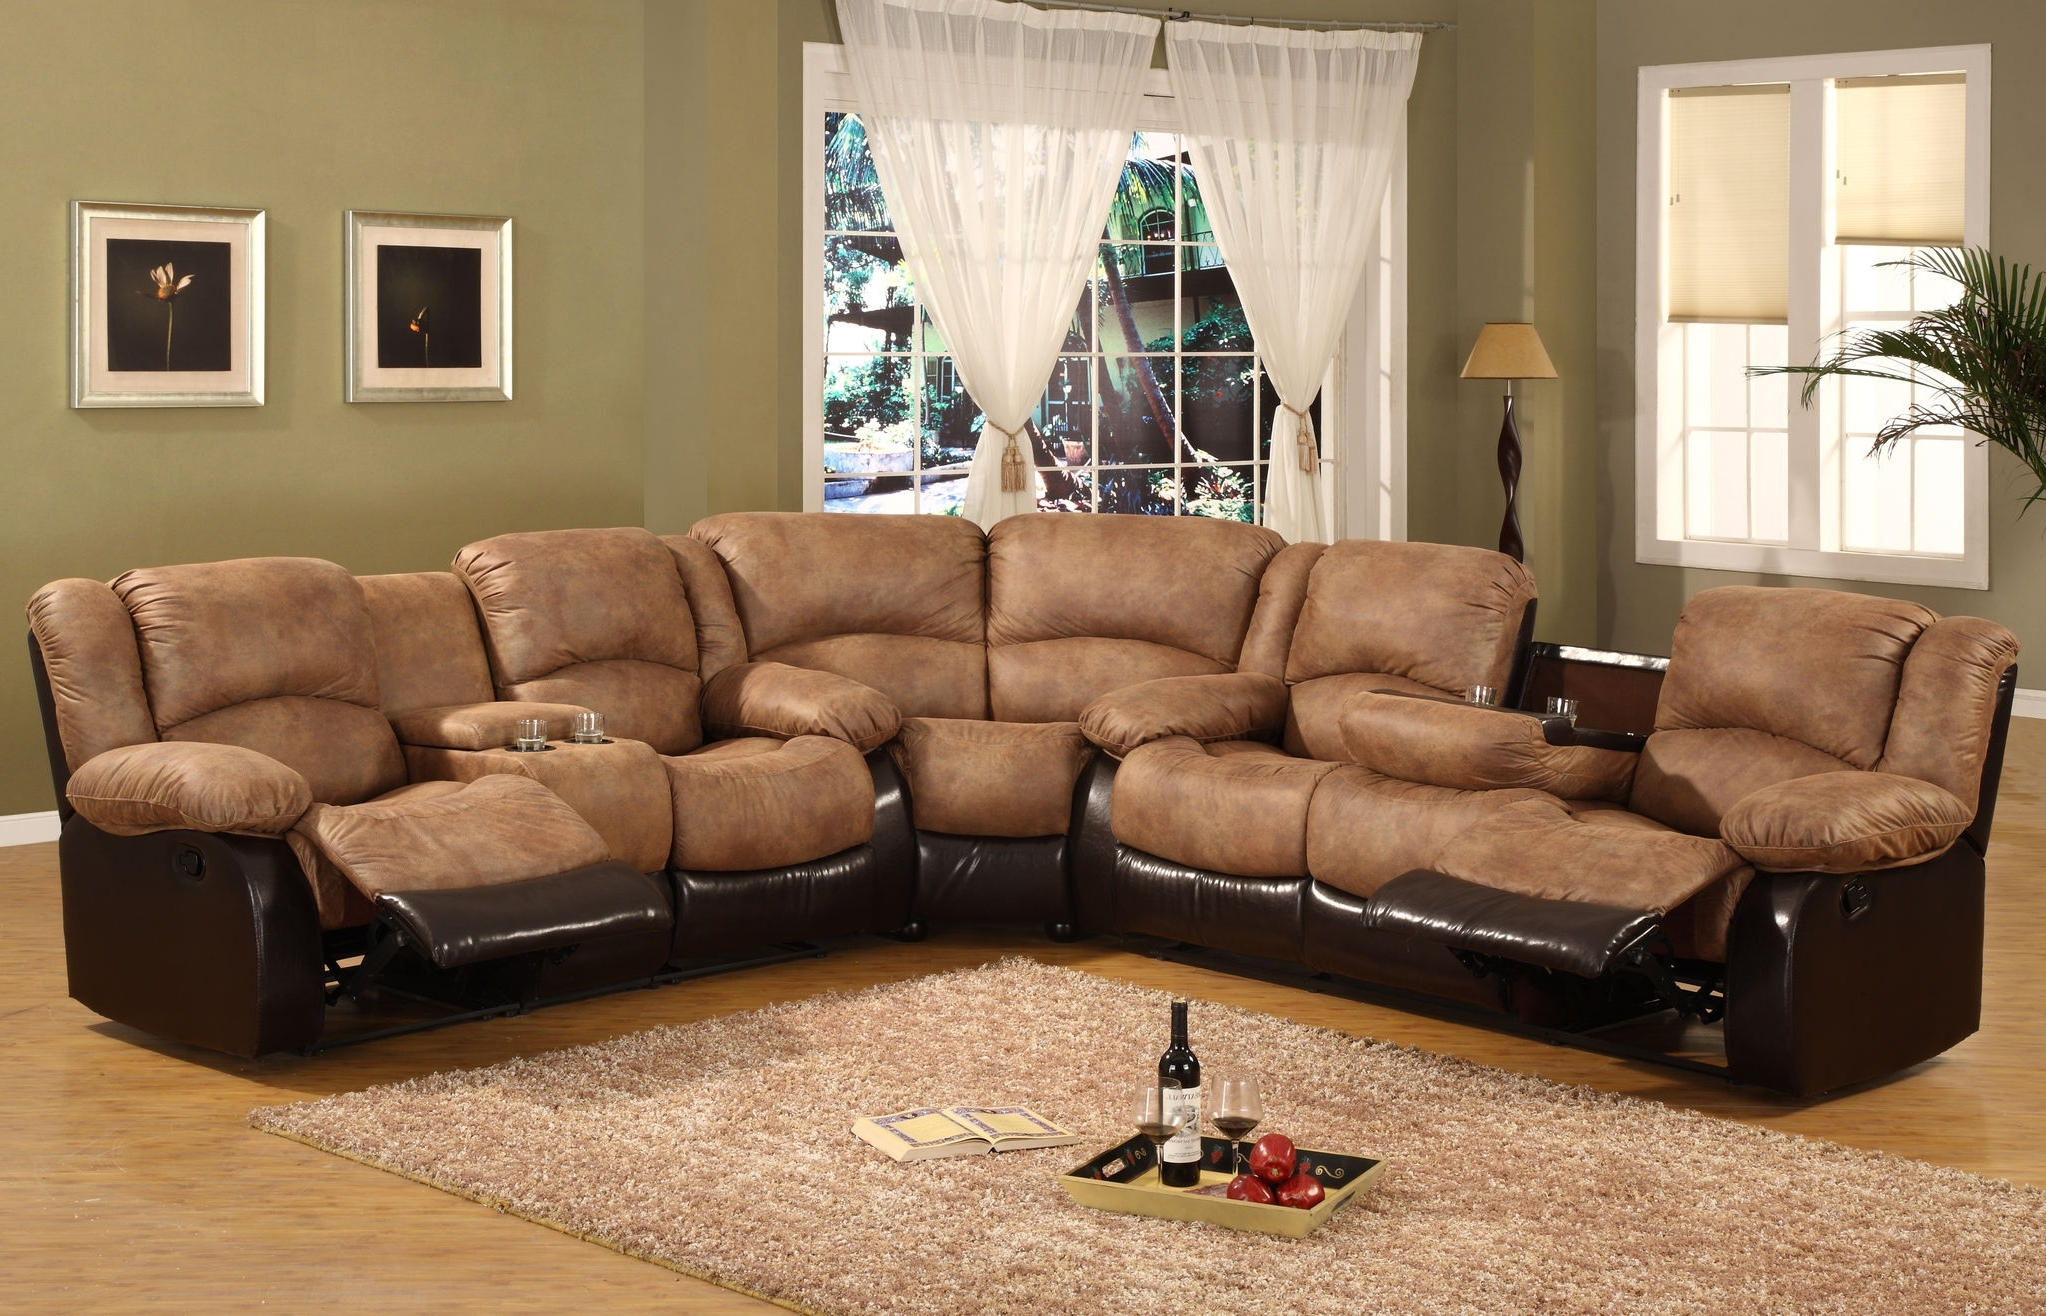 Most Current Lazyboy Sectional Sofas Regarding Sofa: Idea Lazy Boy Reclining Sofa Reclining Sofas, Lazy Boy (View 16 of 20)